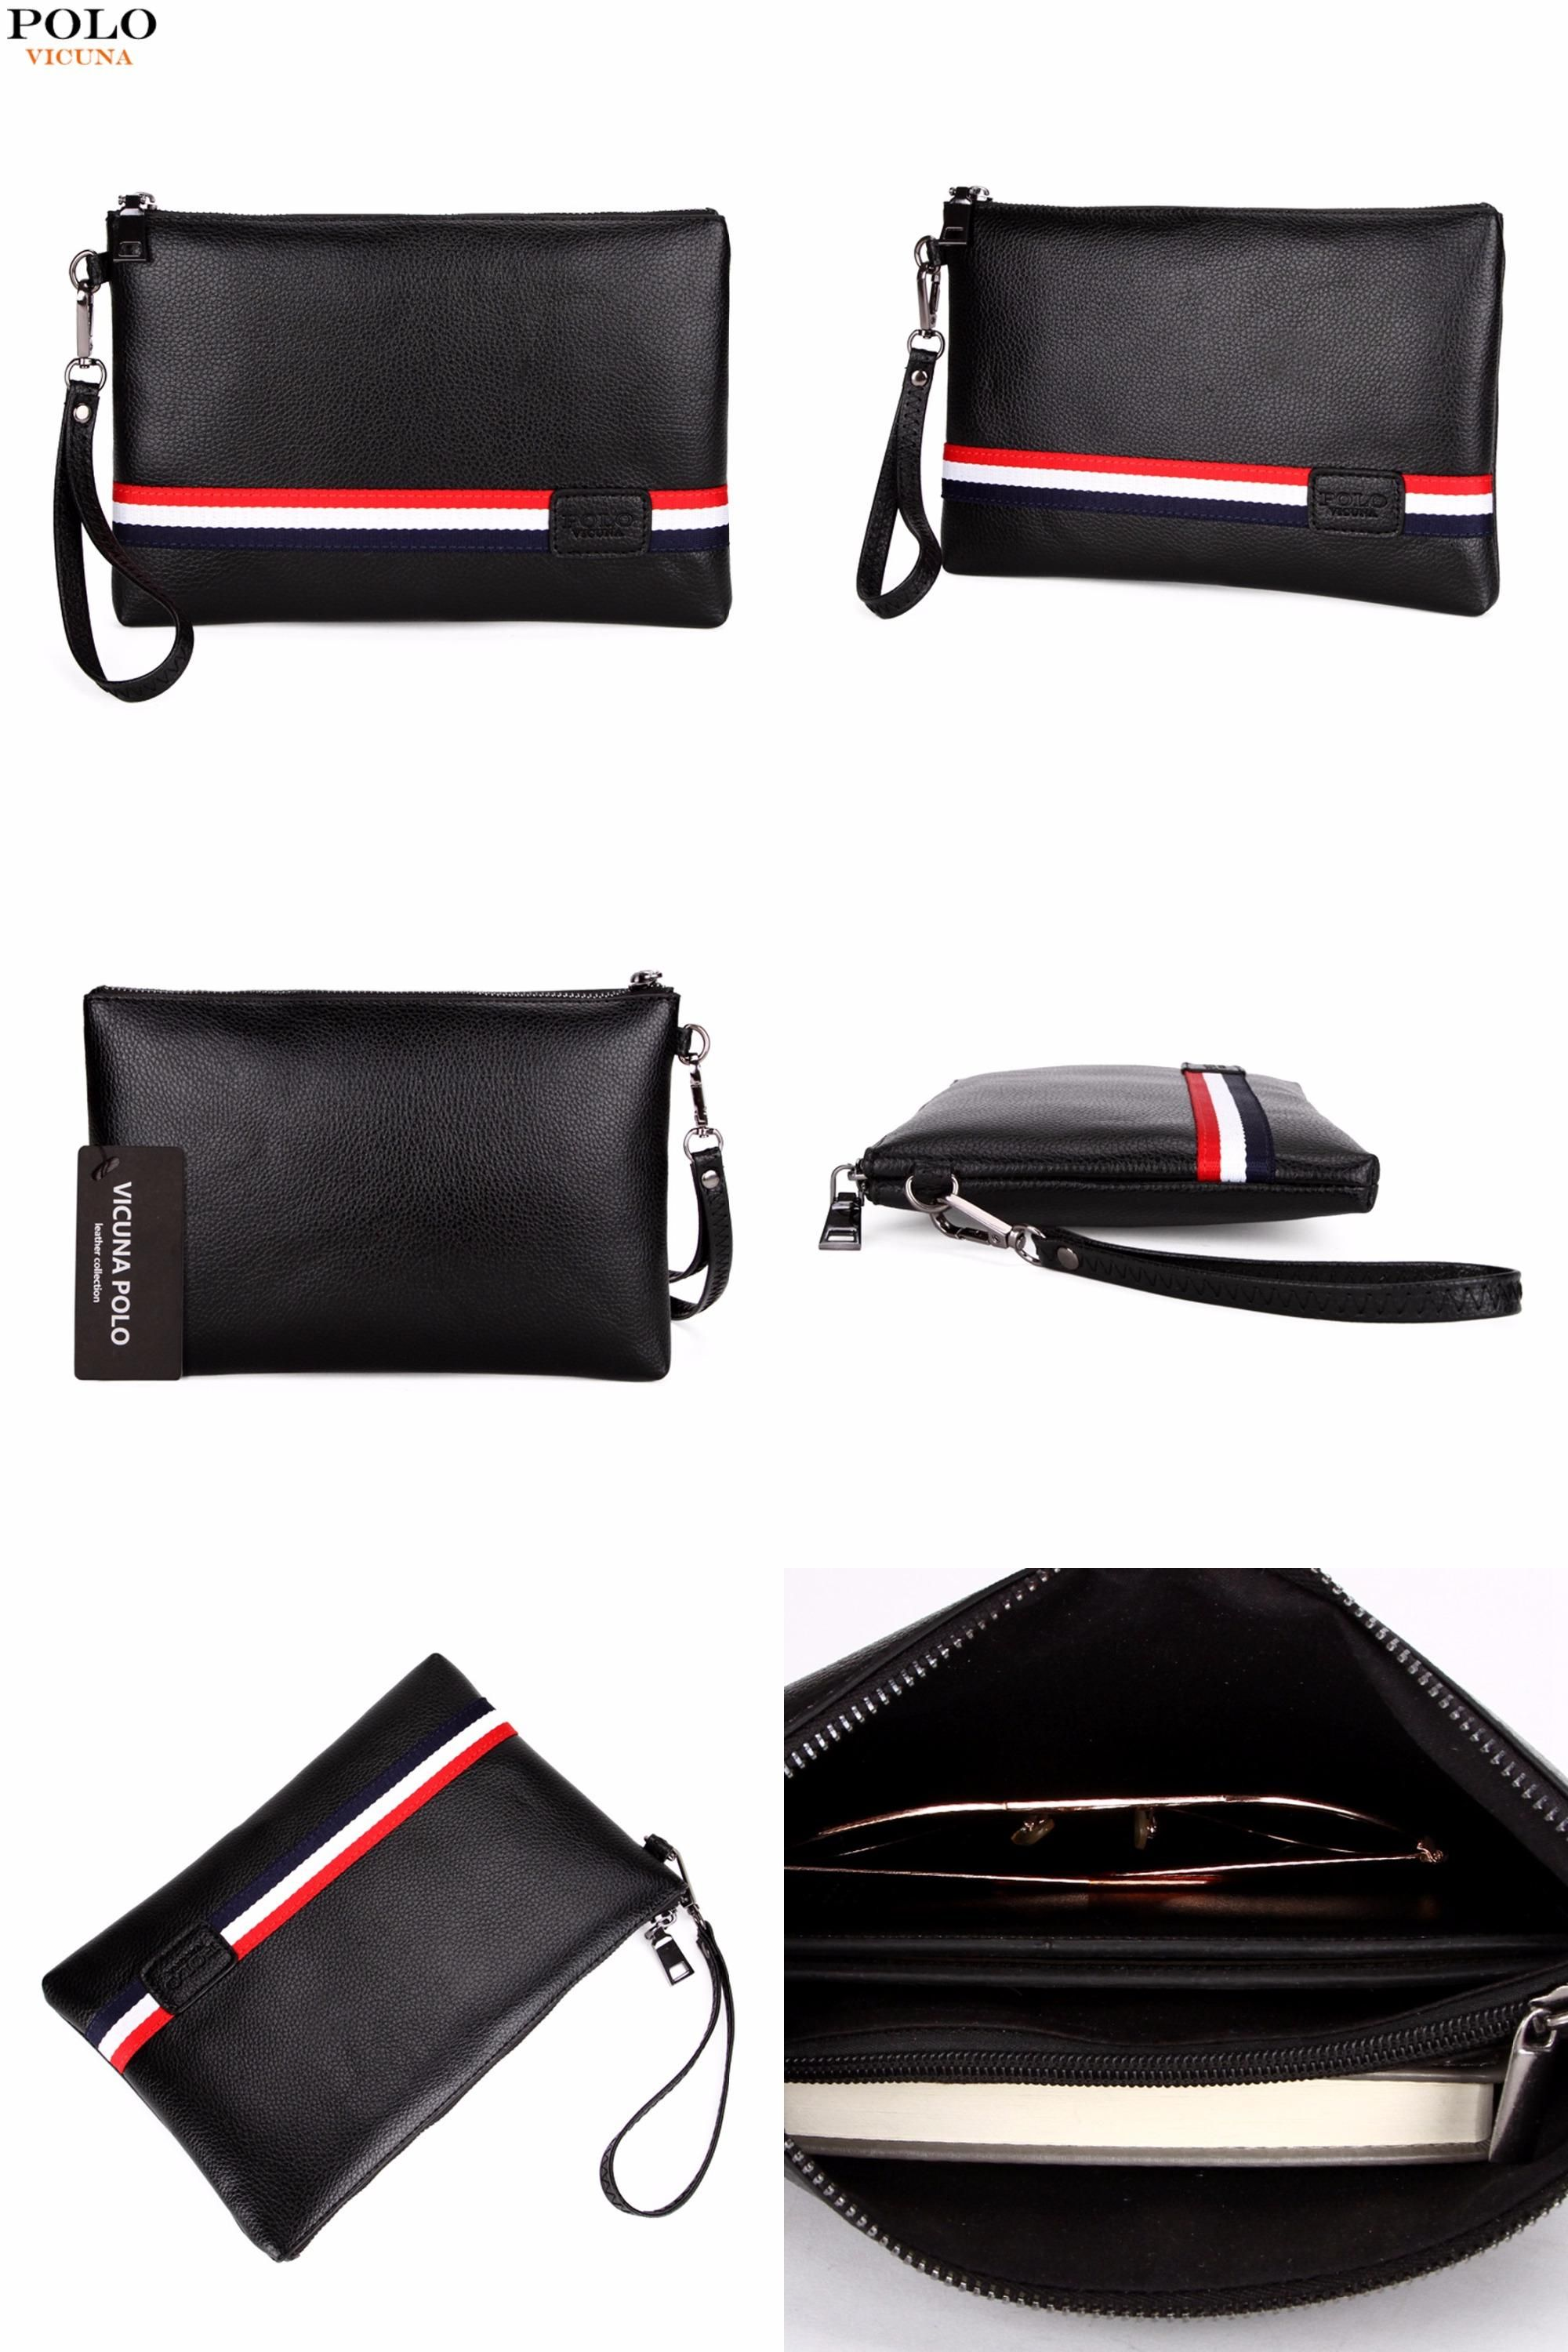 85253e8e300 [Visit to Buy] VICUNA POLO Fashion Classic Striped Design Men Clutch Wallet  Famous Brand Mens Clutch Handbag With Belt Large Envelope Bag New  #Advertisement